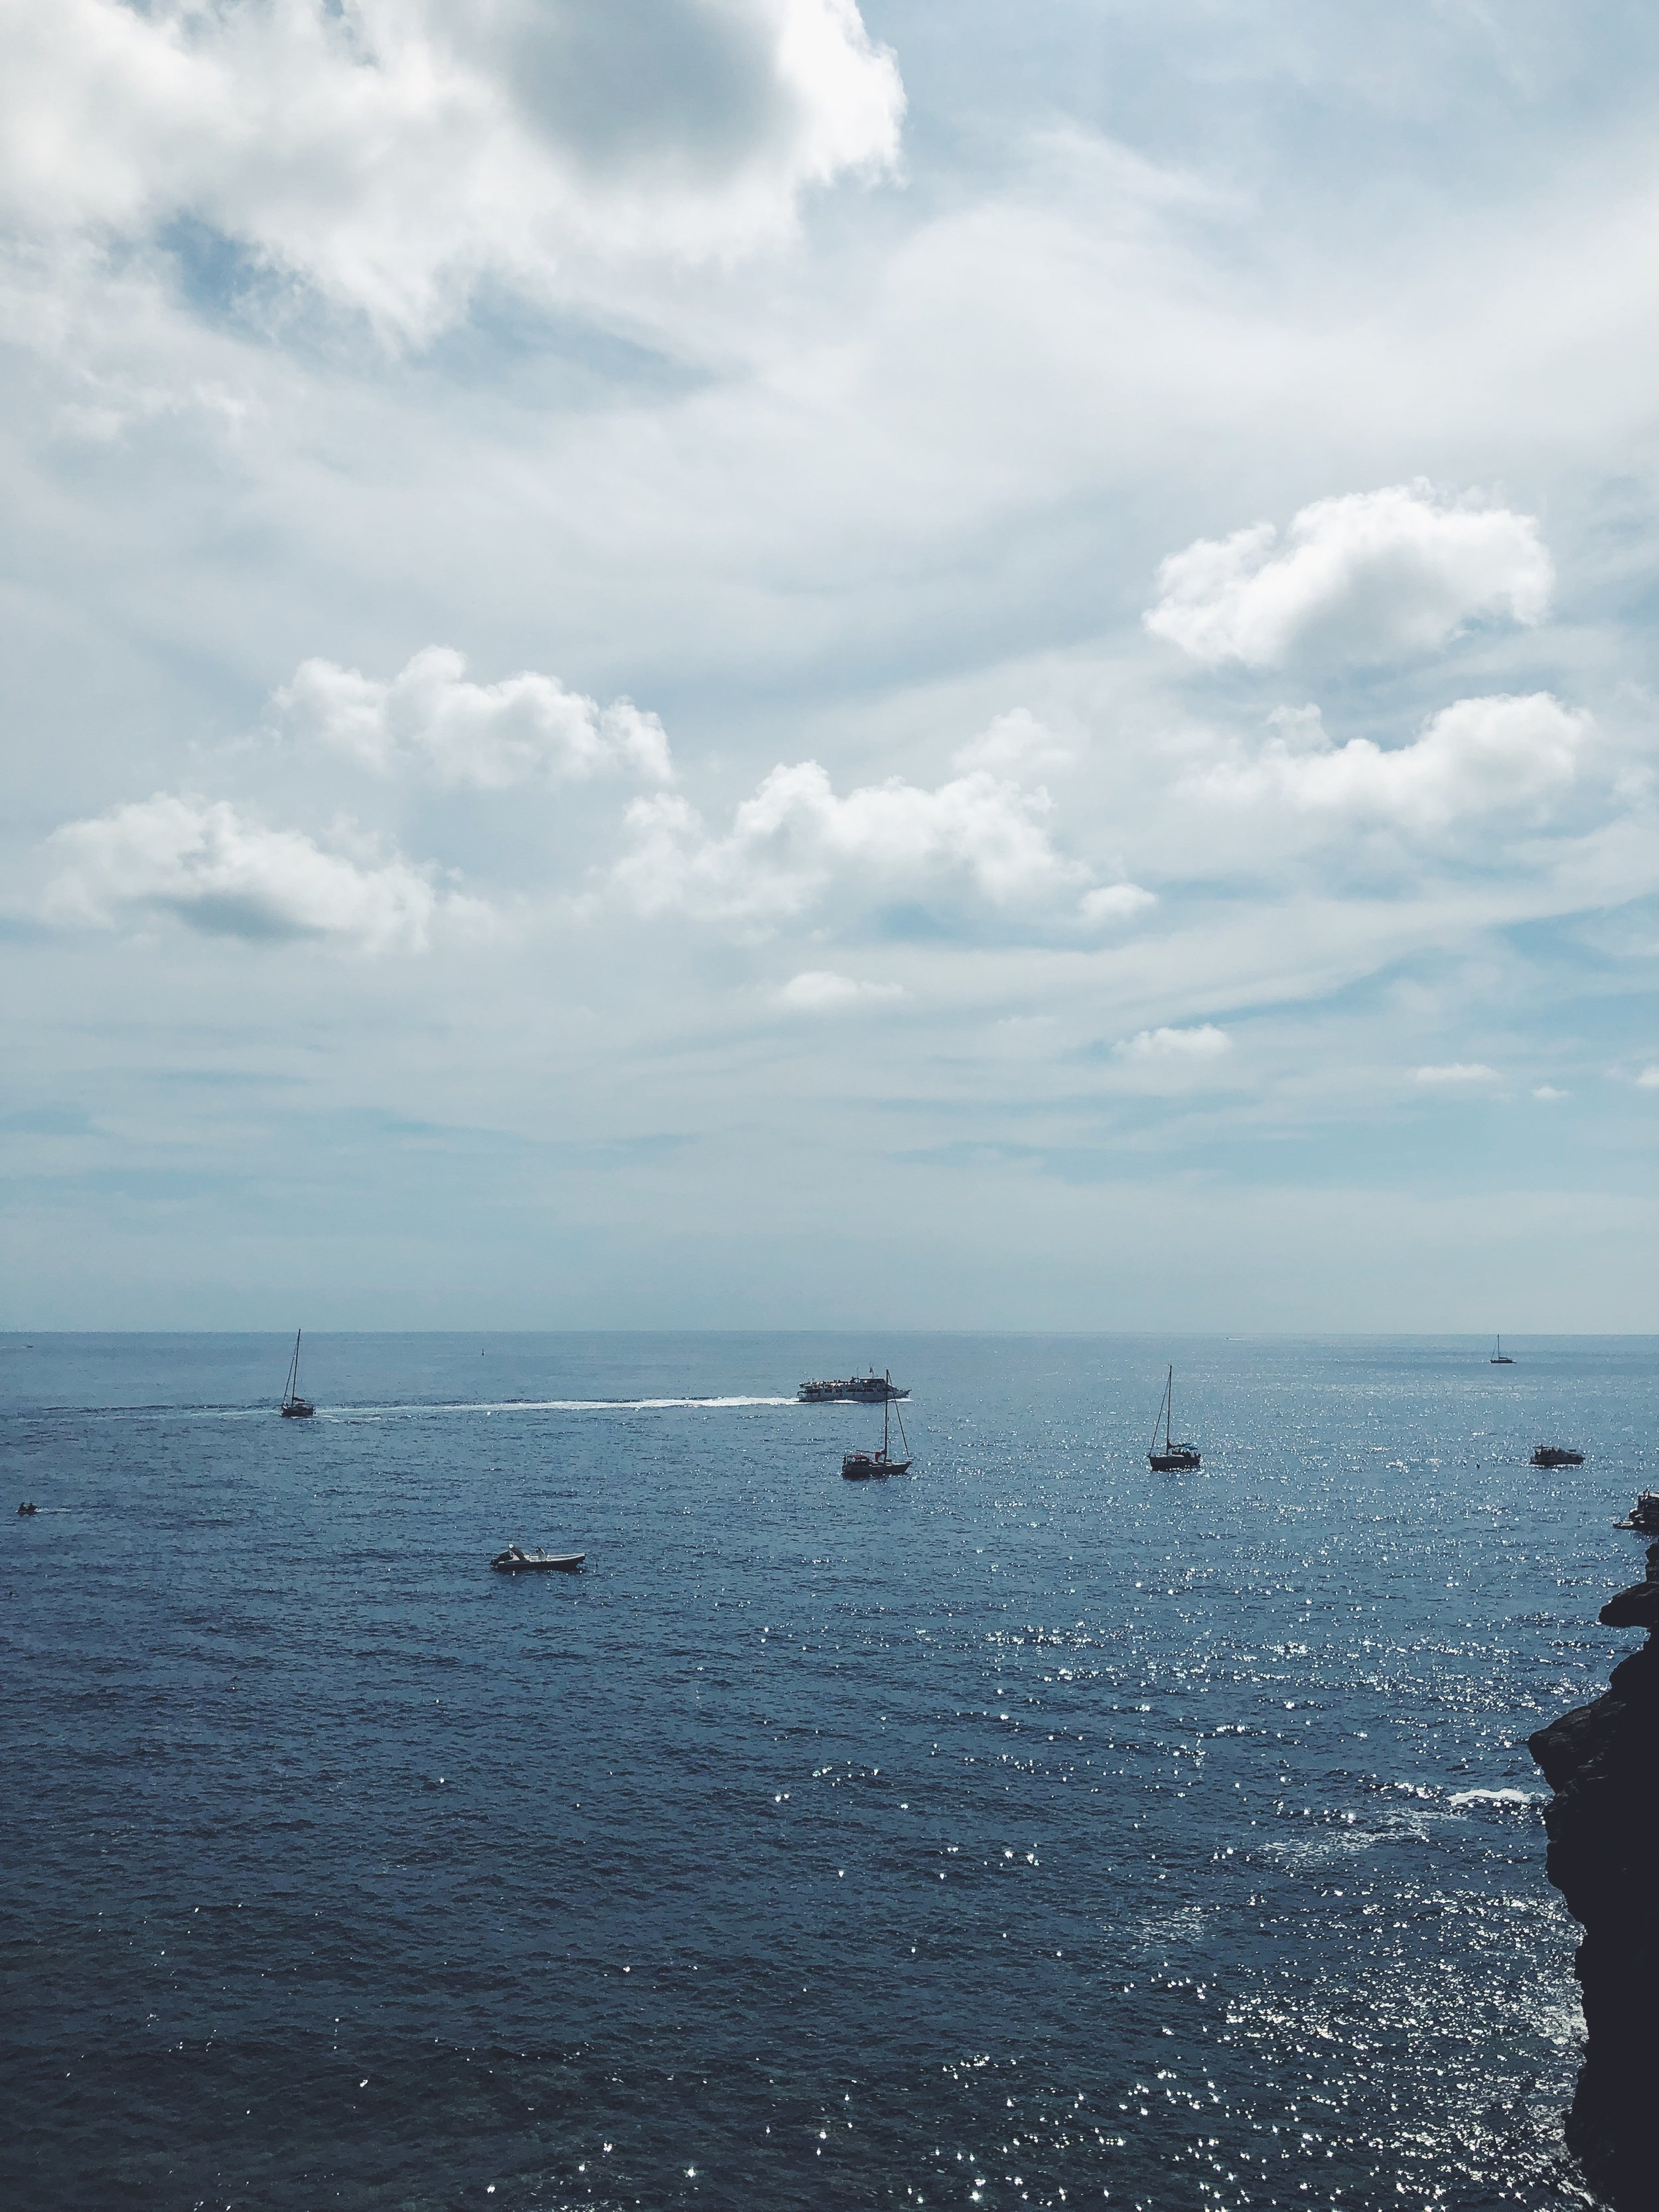 Hello to Our First View of the Mediterranean from Cinque Terre!